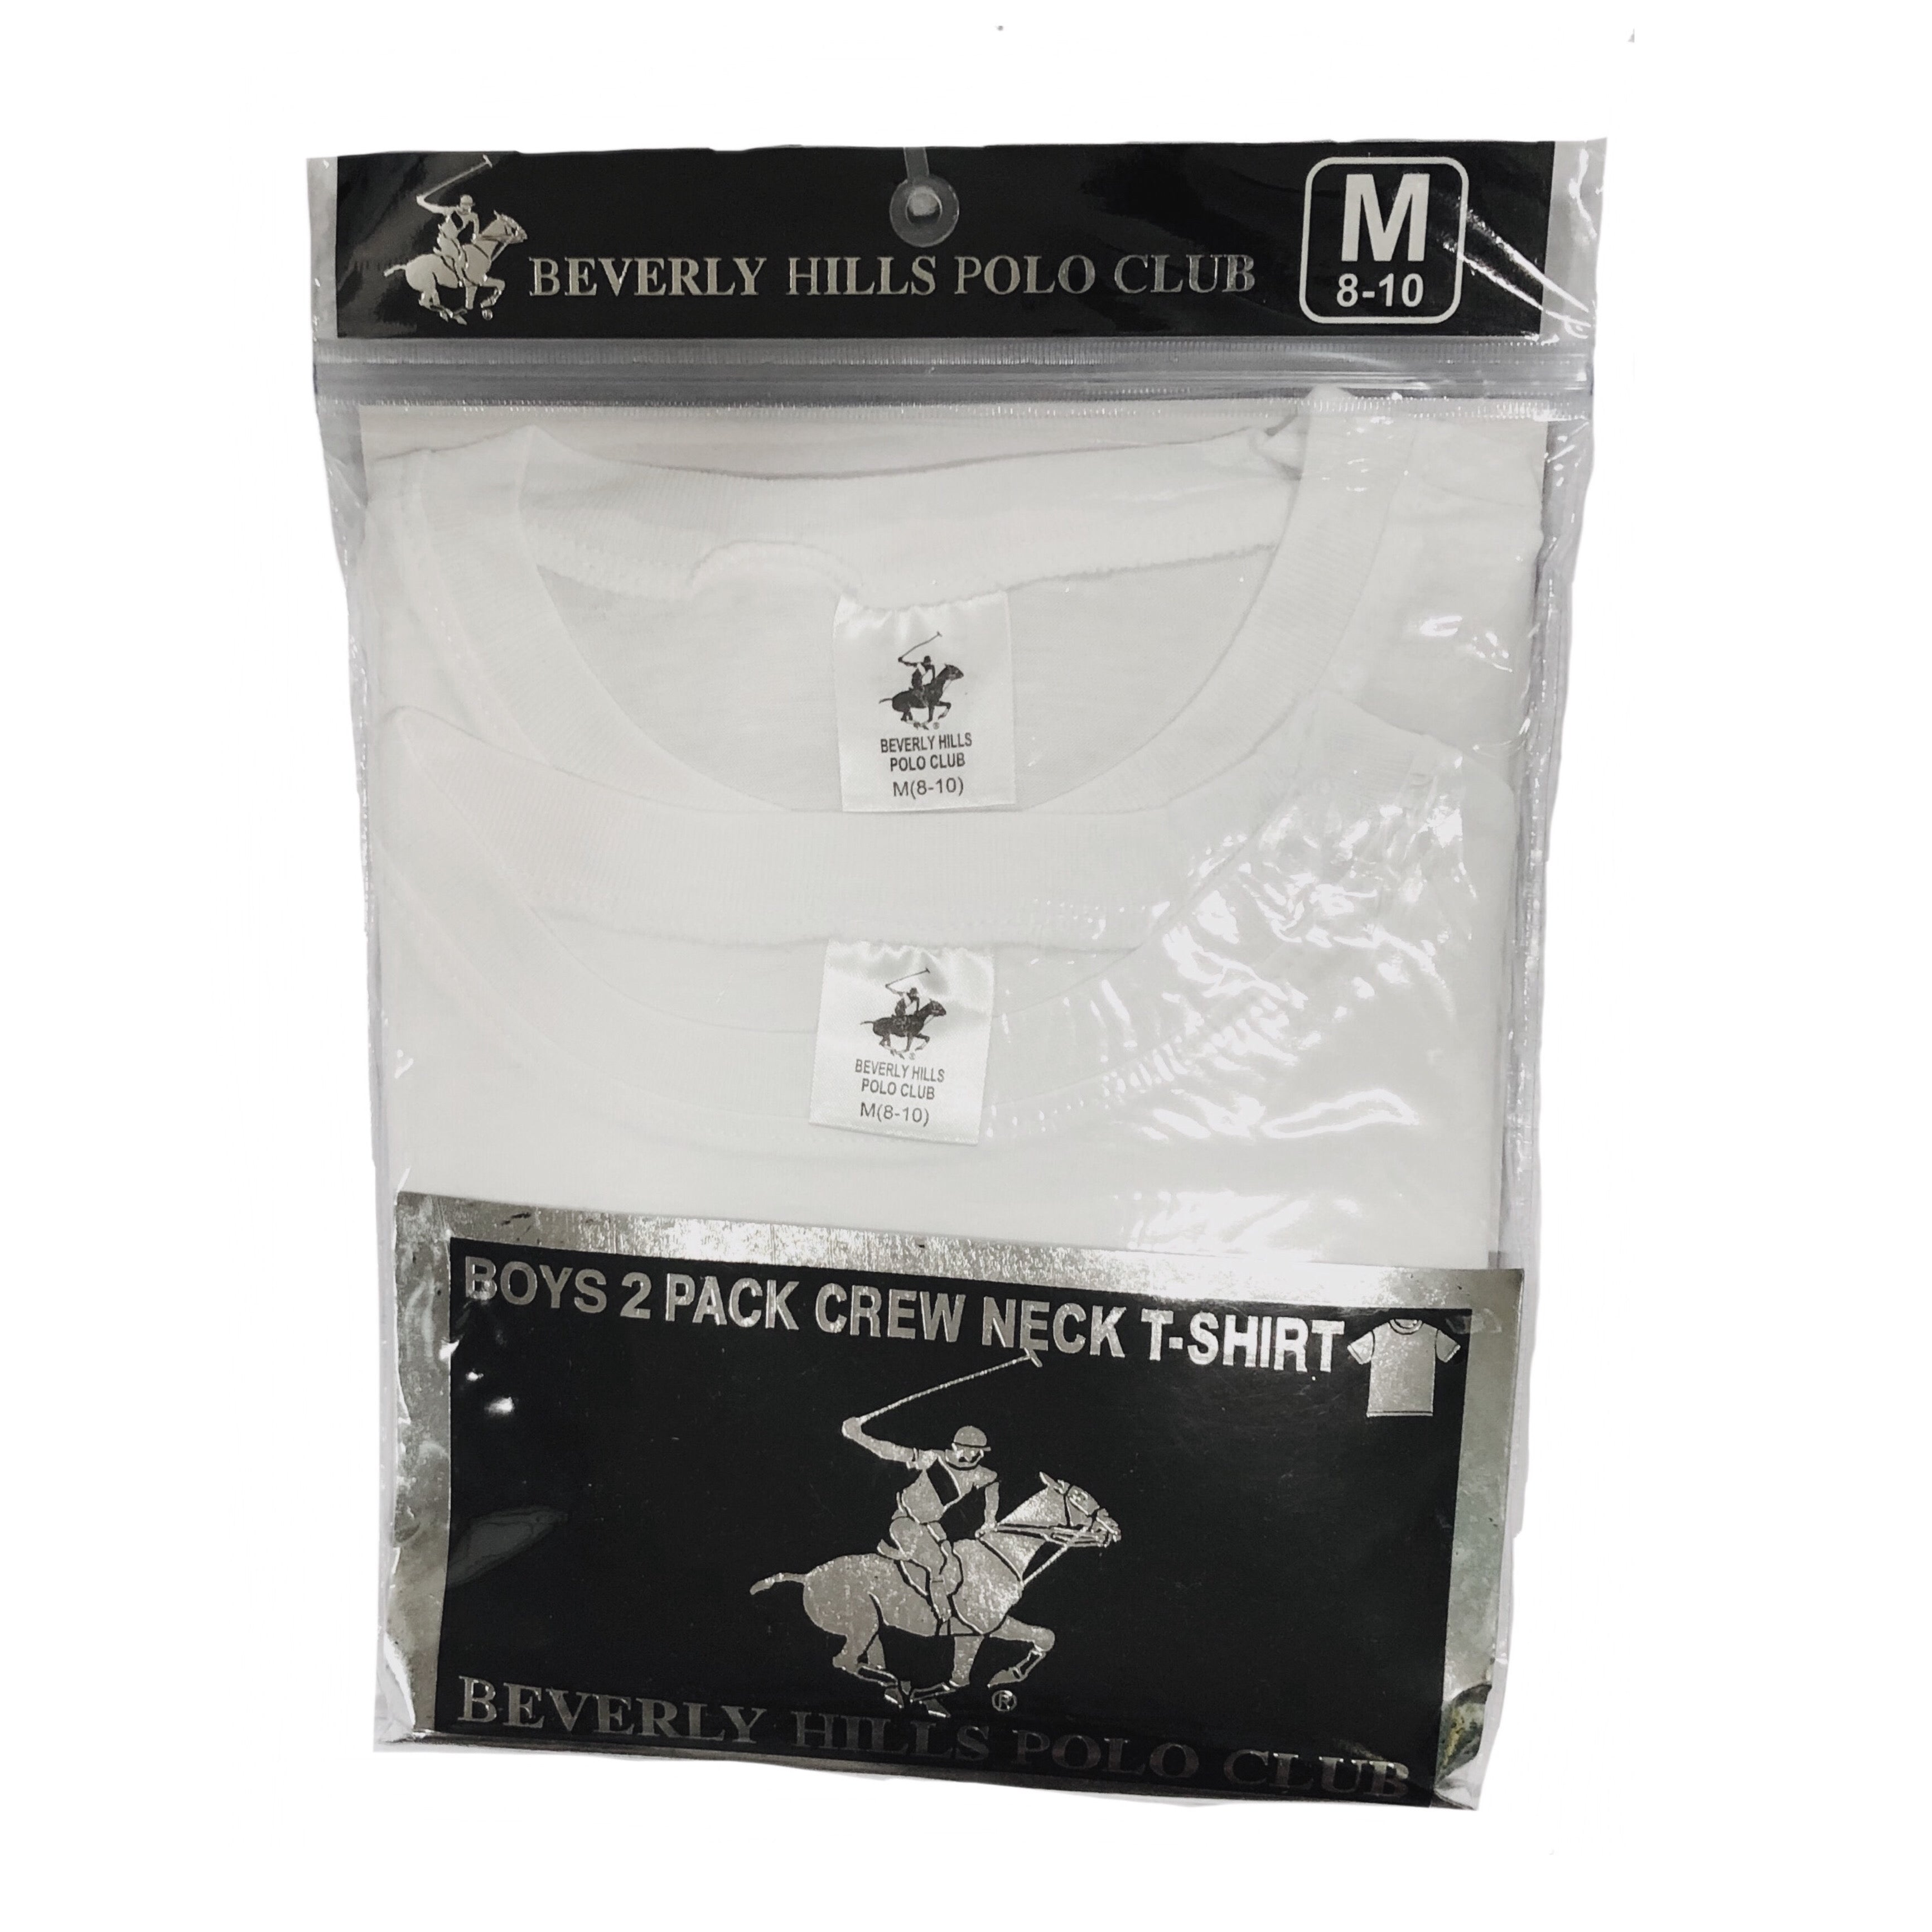 Beverly Hills Polo Club 2 pk Crew Neck T-Shirt